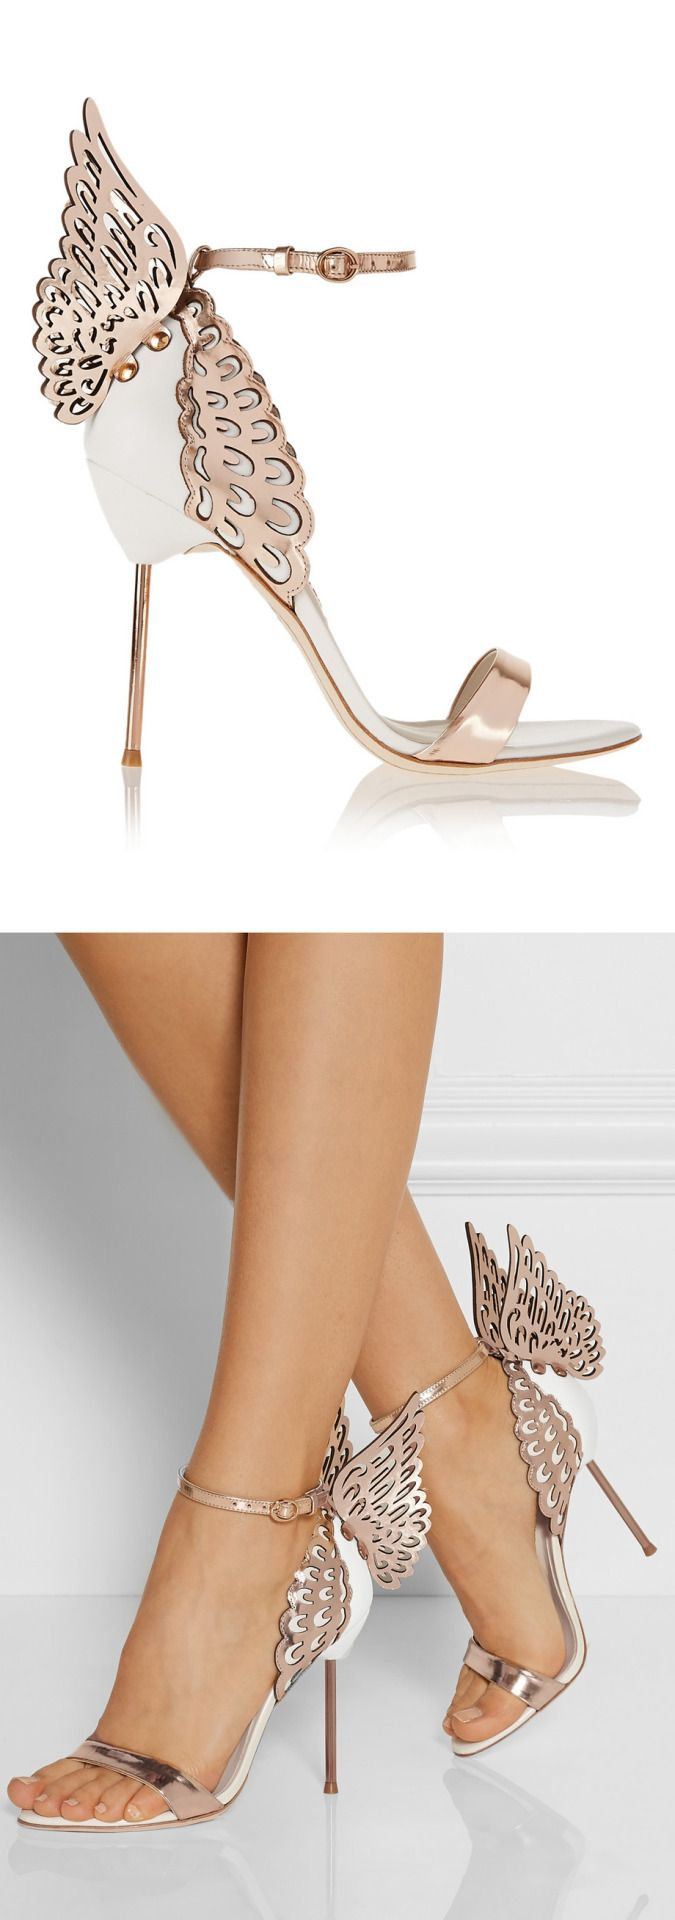 Winged Heels | Sophia Webster   I know the perfect person for these. Beautiful